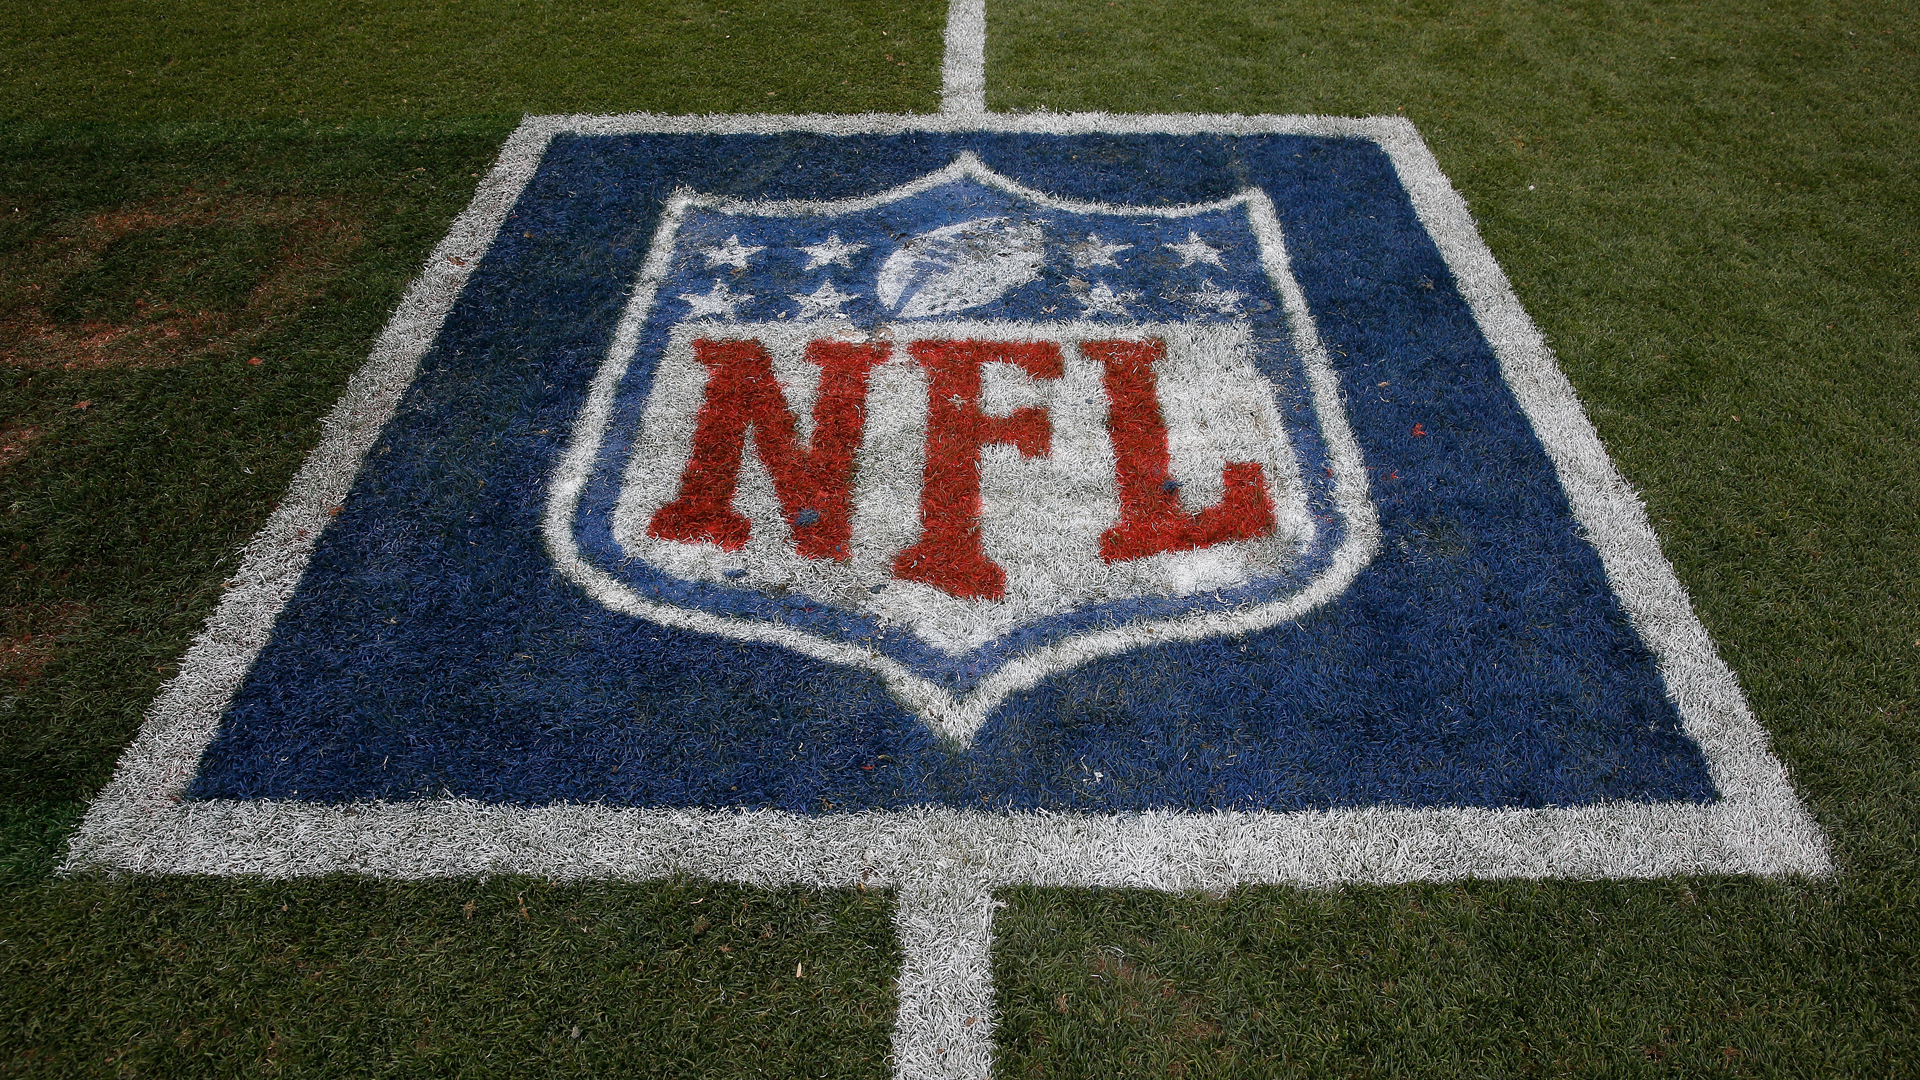 Expect the NFL to hire 17 full-time officials, Troy Vincent tells AP